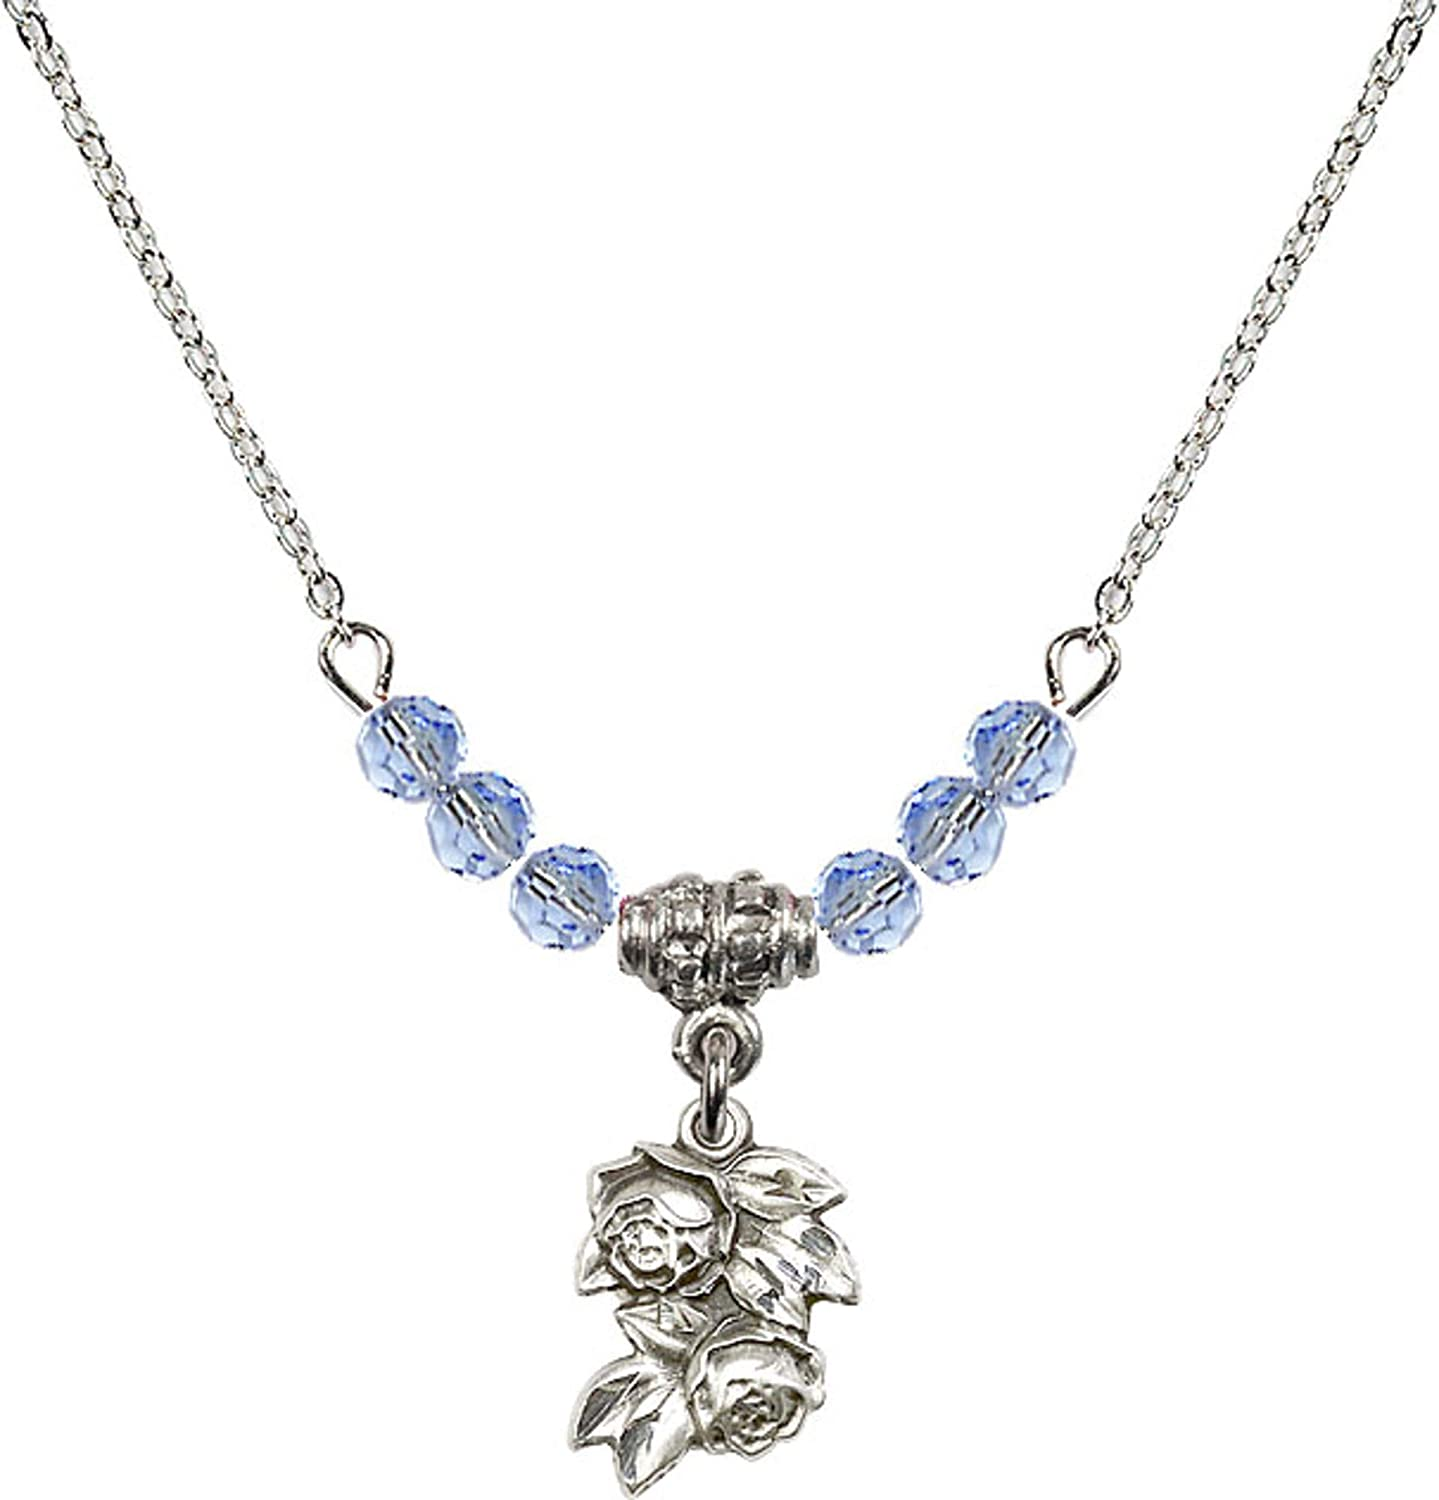 Bonyak Jewelry 18 Inch Rhodium Plated Necklace w// 4mm Light Blue September Birth Month Stone Beads and Rose Charm